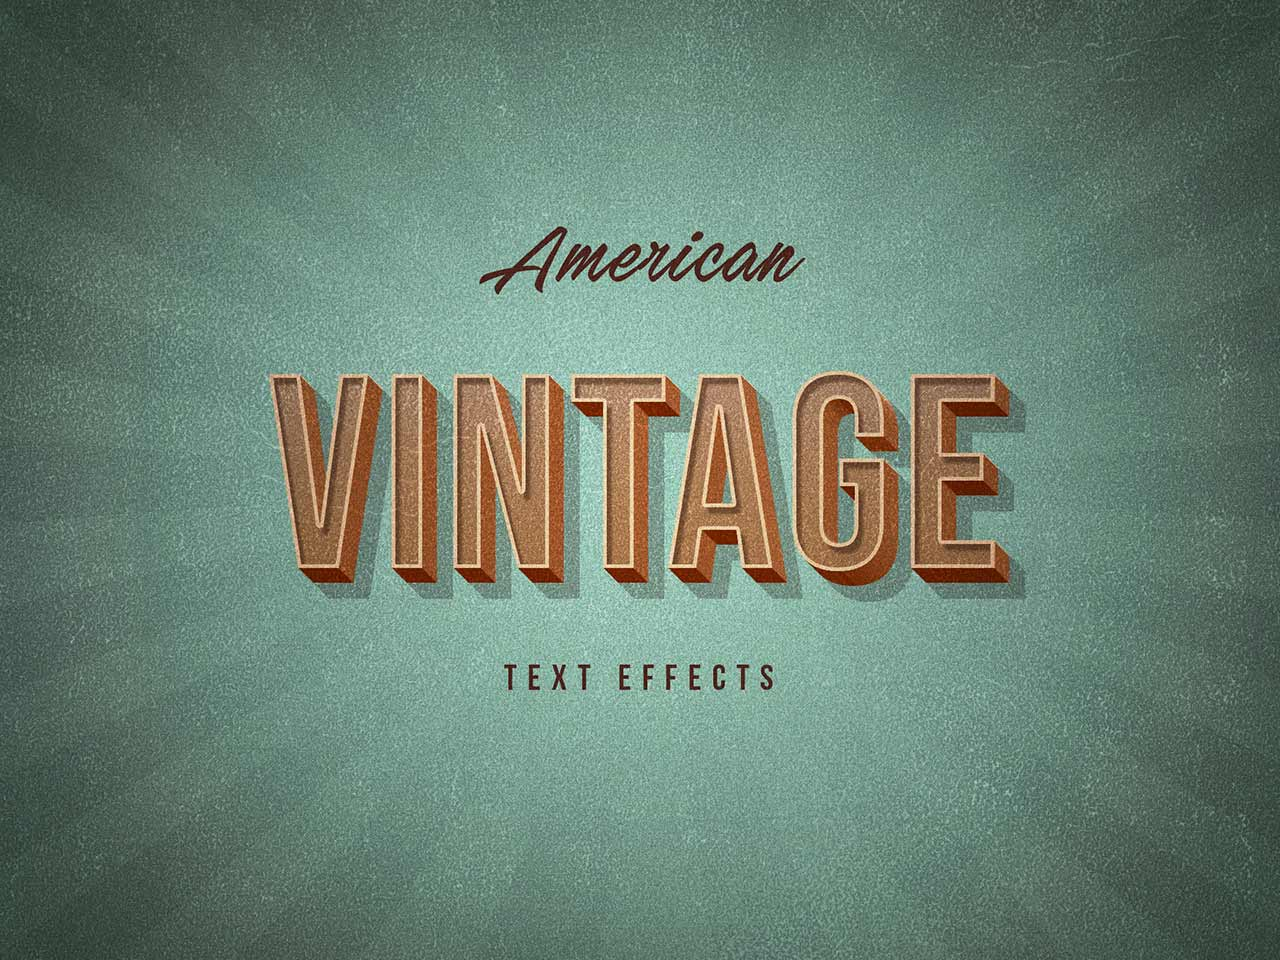 American Vintage Text Effects